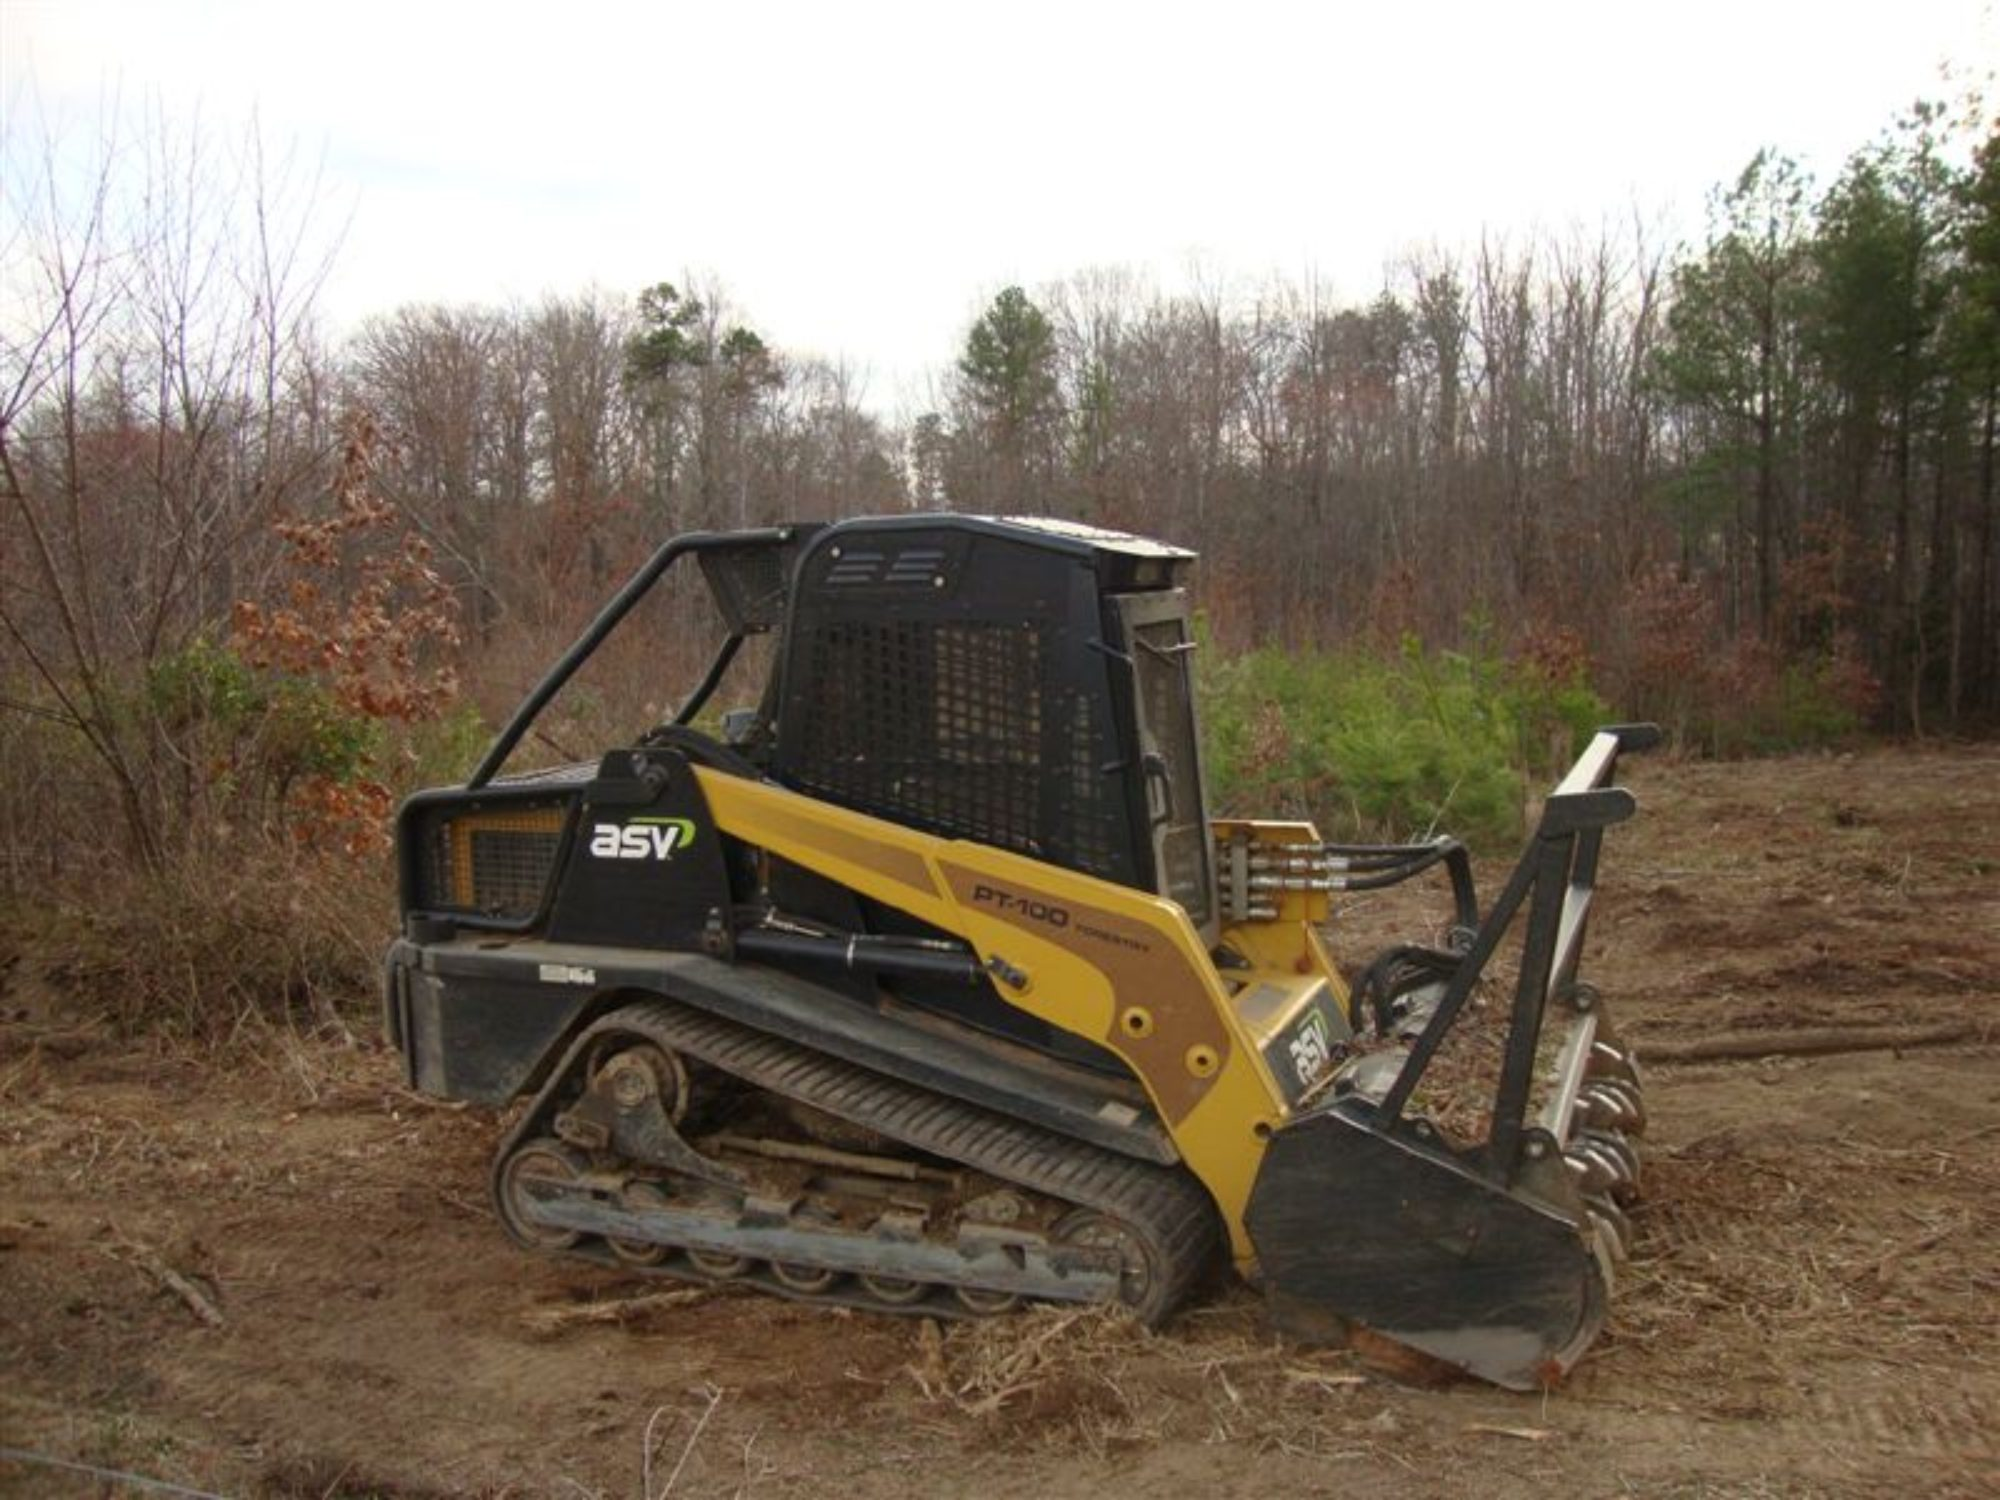 How Do I Clear My Land? What Land Clearing Equipment Should I Use?